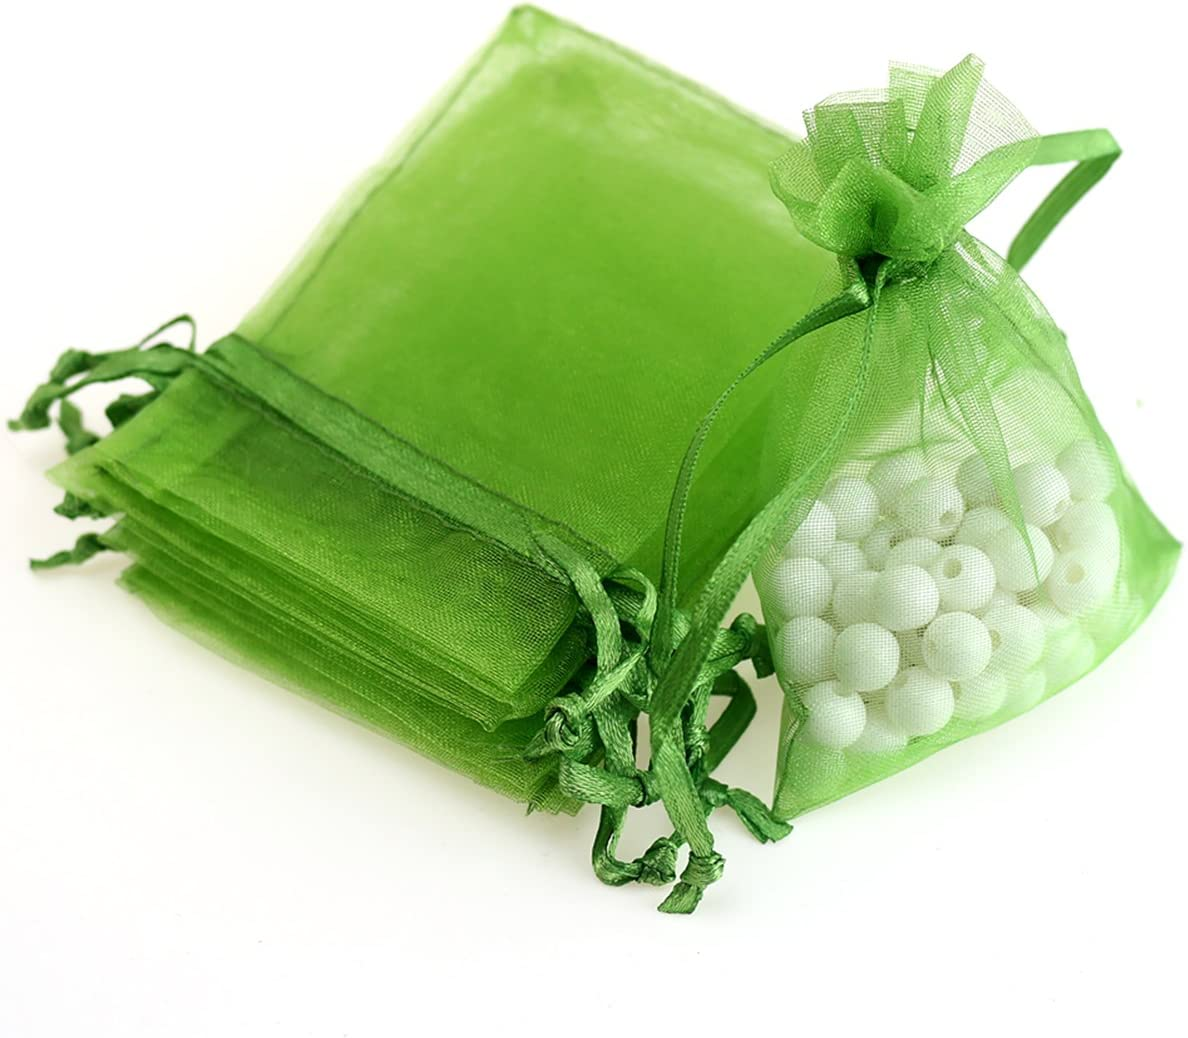 """Akstore 100Pcs 2.8""""x3.6""""(7x9cm) Sheer Drawstring Organza Jewelry Pouches Wedding Party Christmas Favor Gift Bags (Army Green)"""